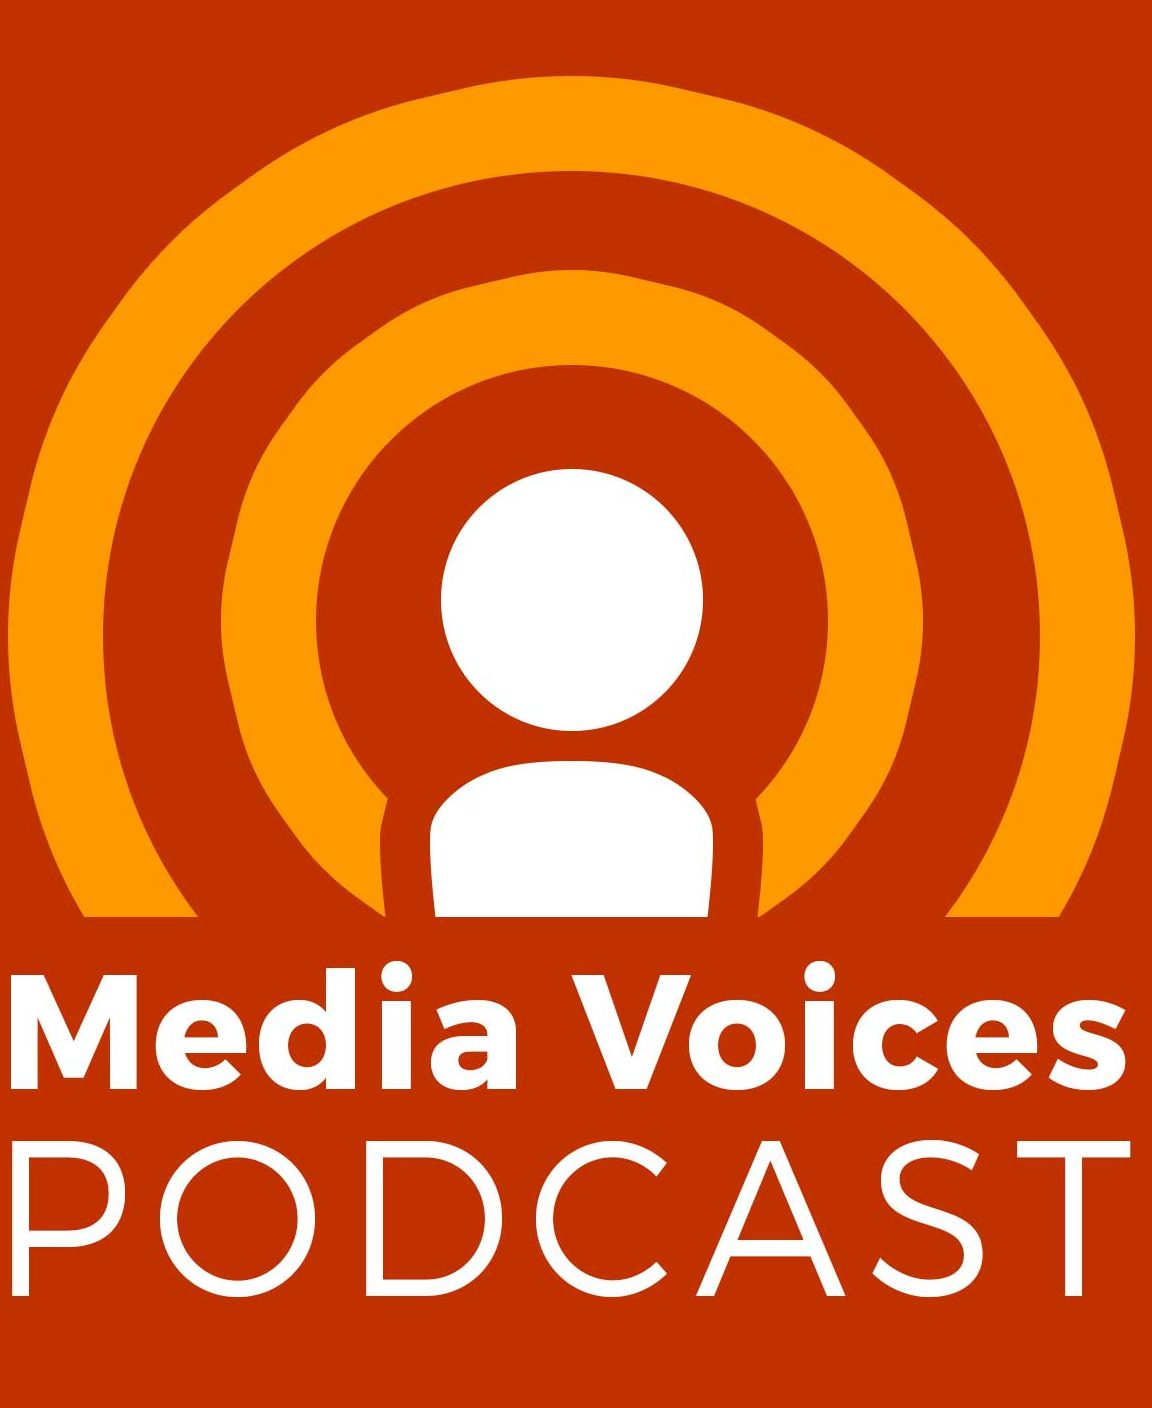 Media Voices Podcast